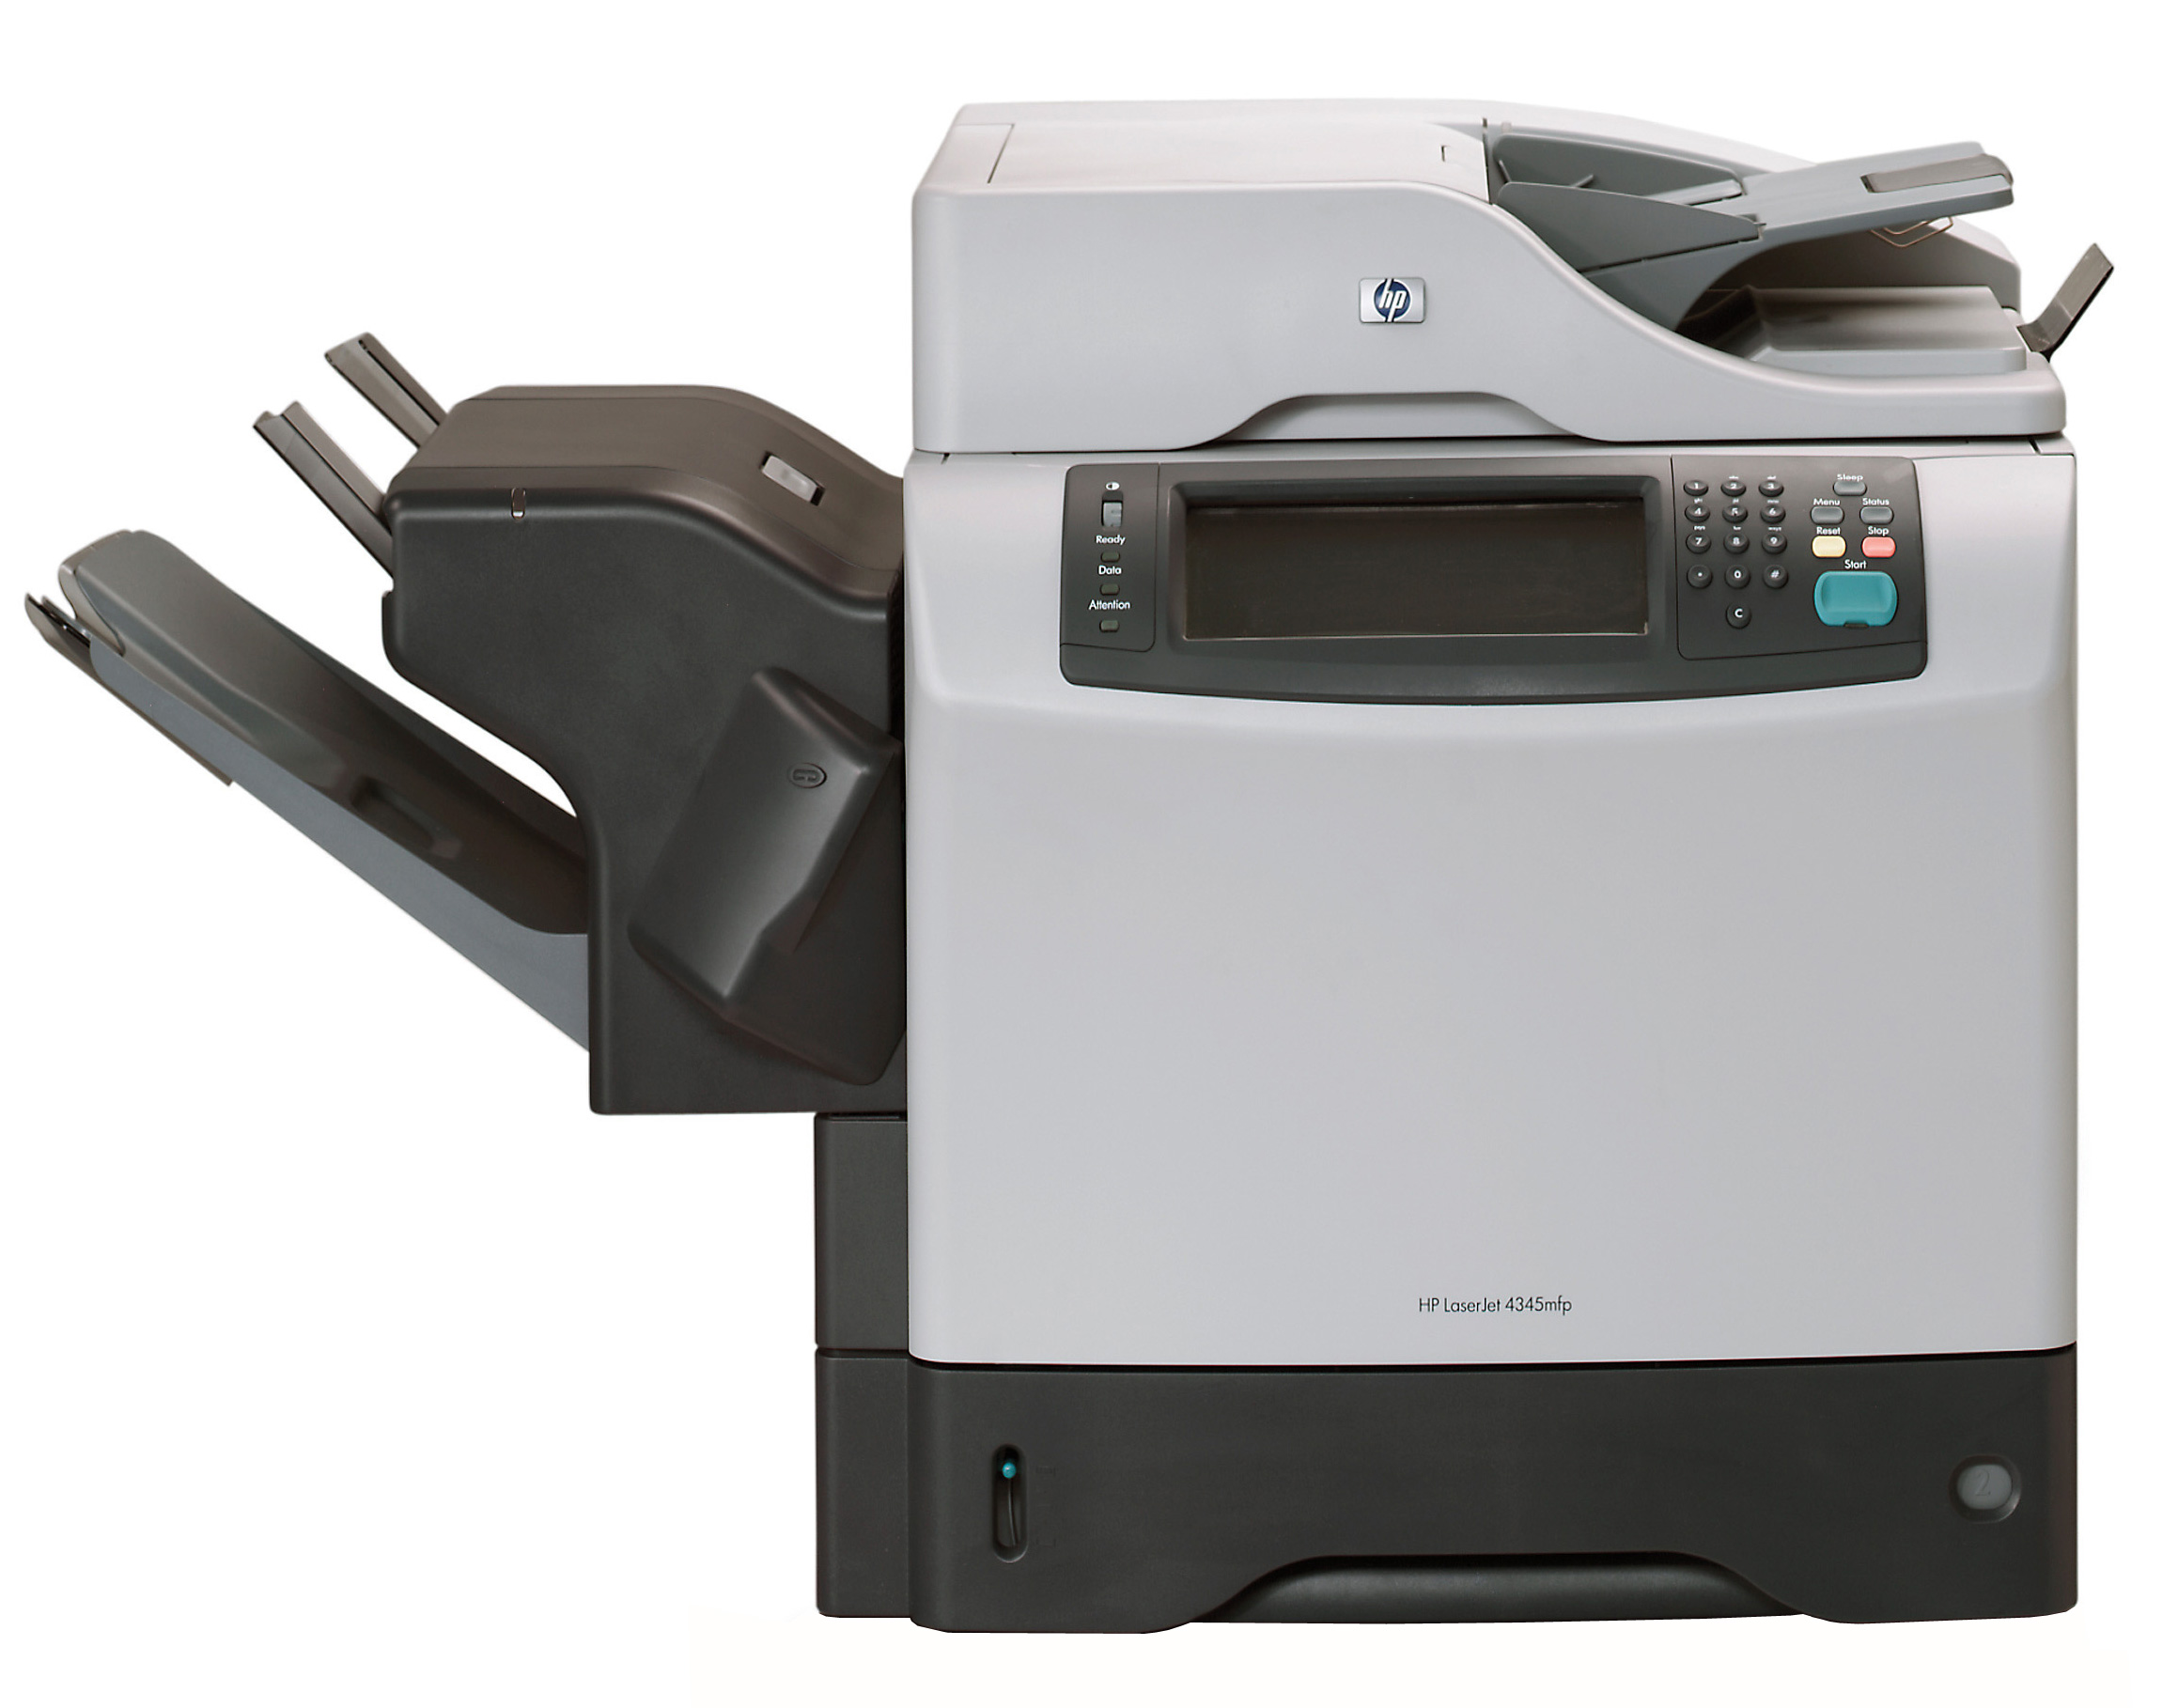 Hp Laserjet 4345x Mfp Printer Reconditioned 1100a Service Manual